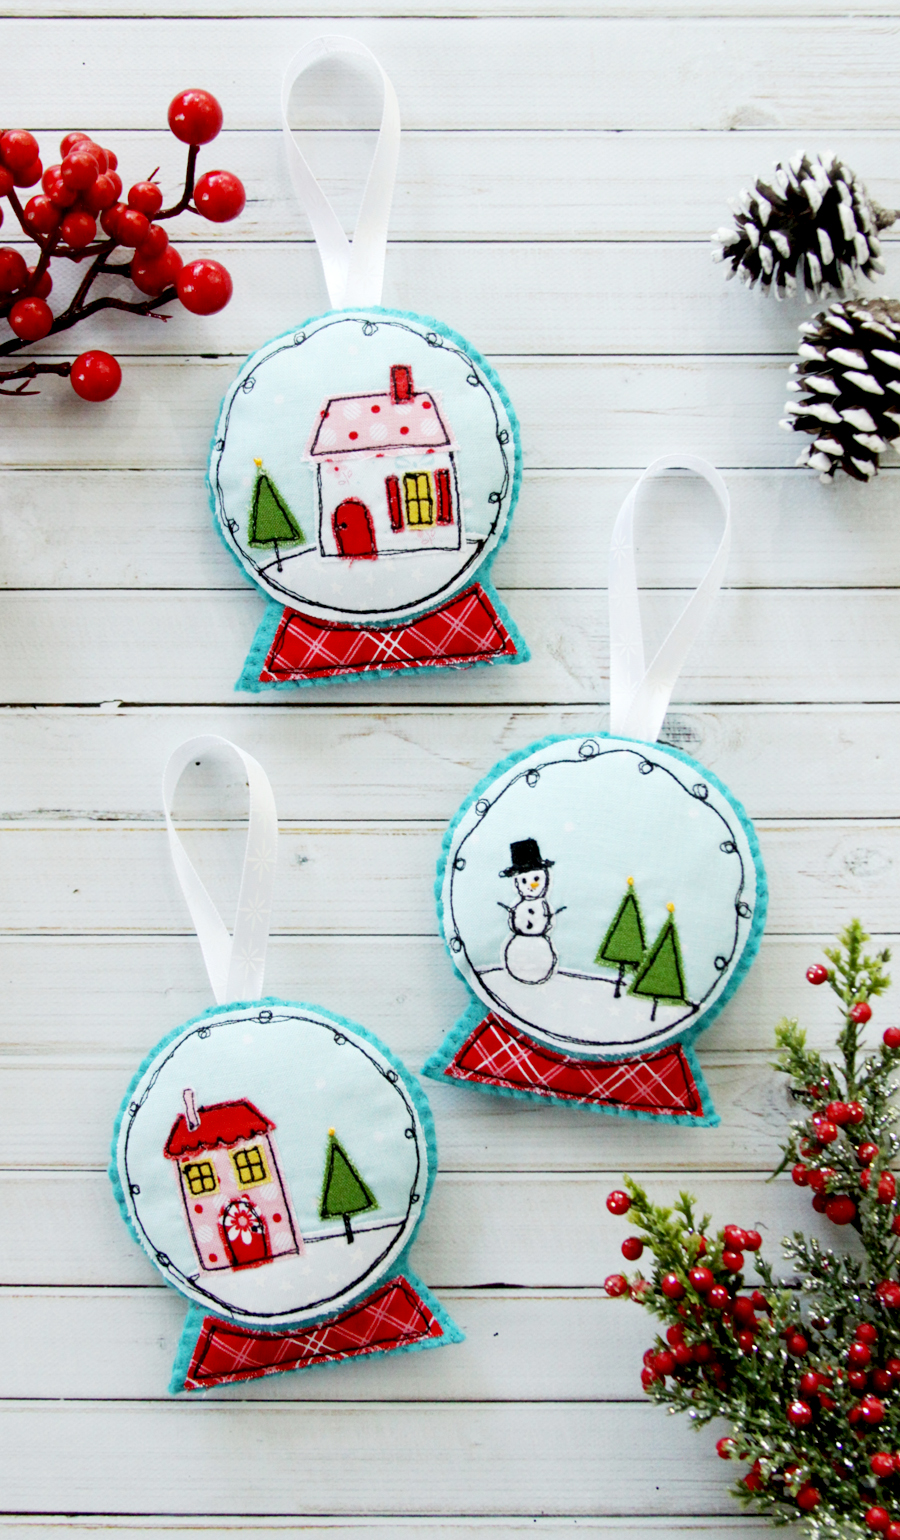 Show and Tell Link Party | Fabric & Felt Snowglobe Ornaments via Flamingo Toes